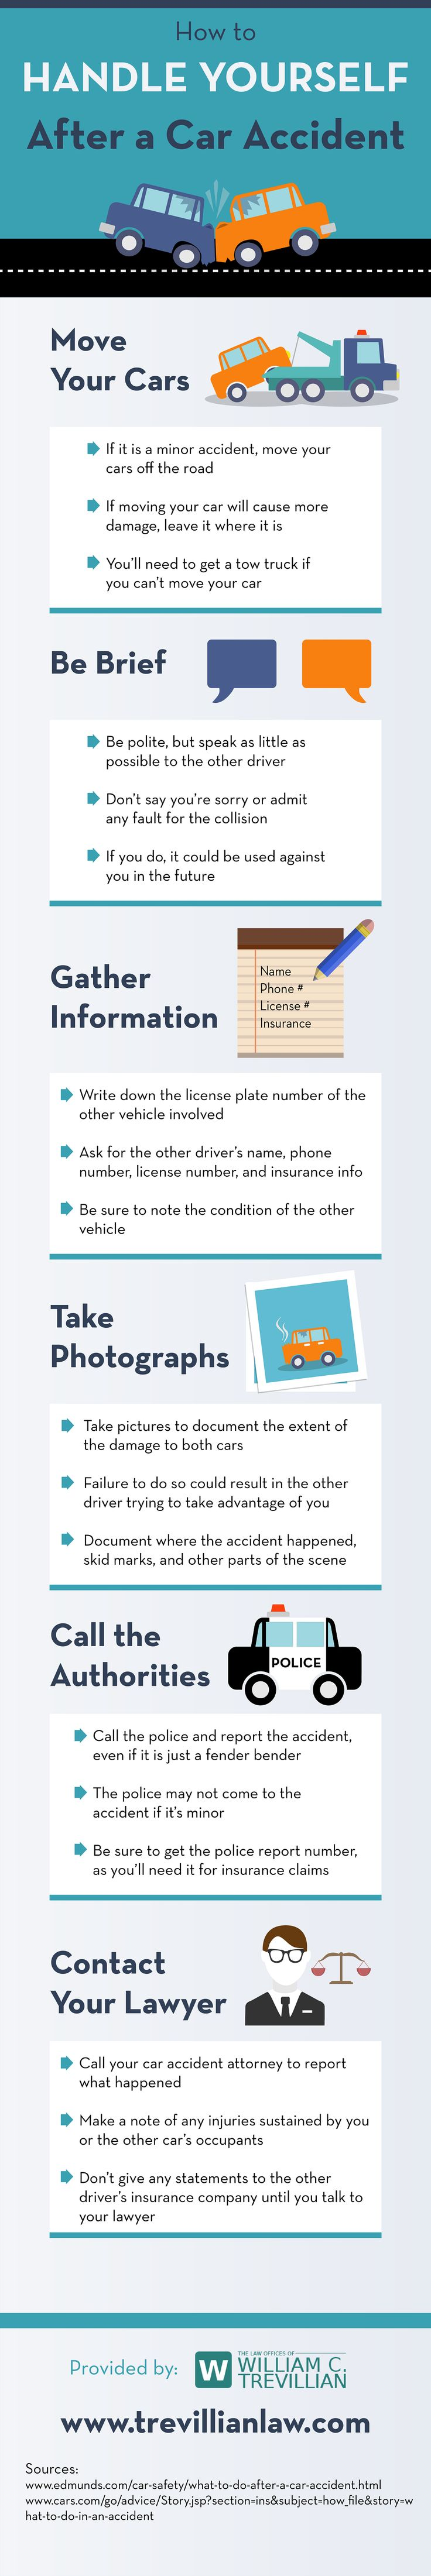 20 best Injury Law Infographics images on Pinterest | Info graphics ...